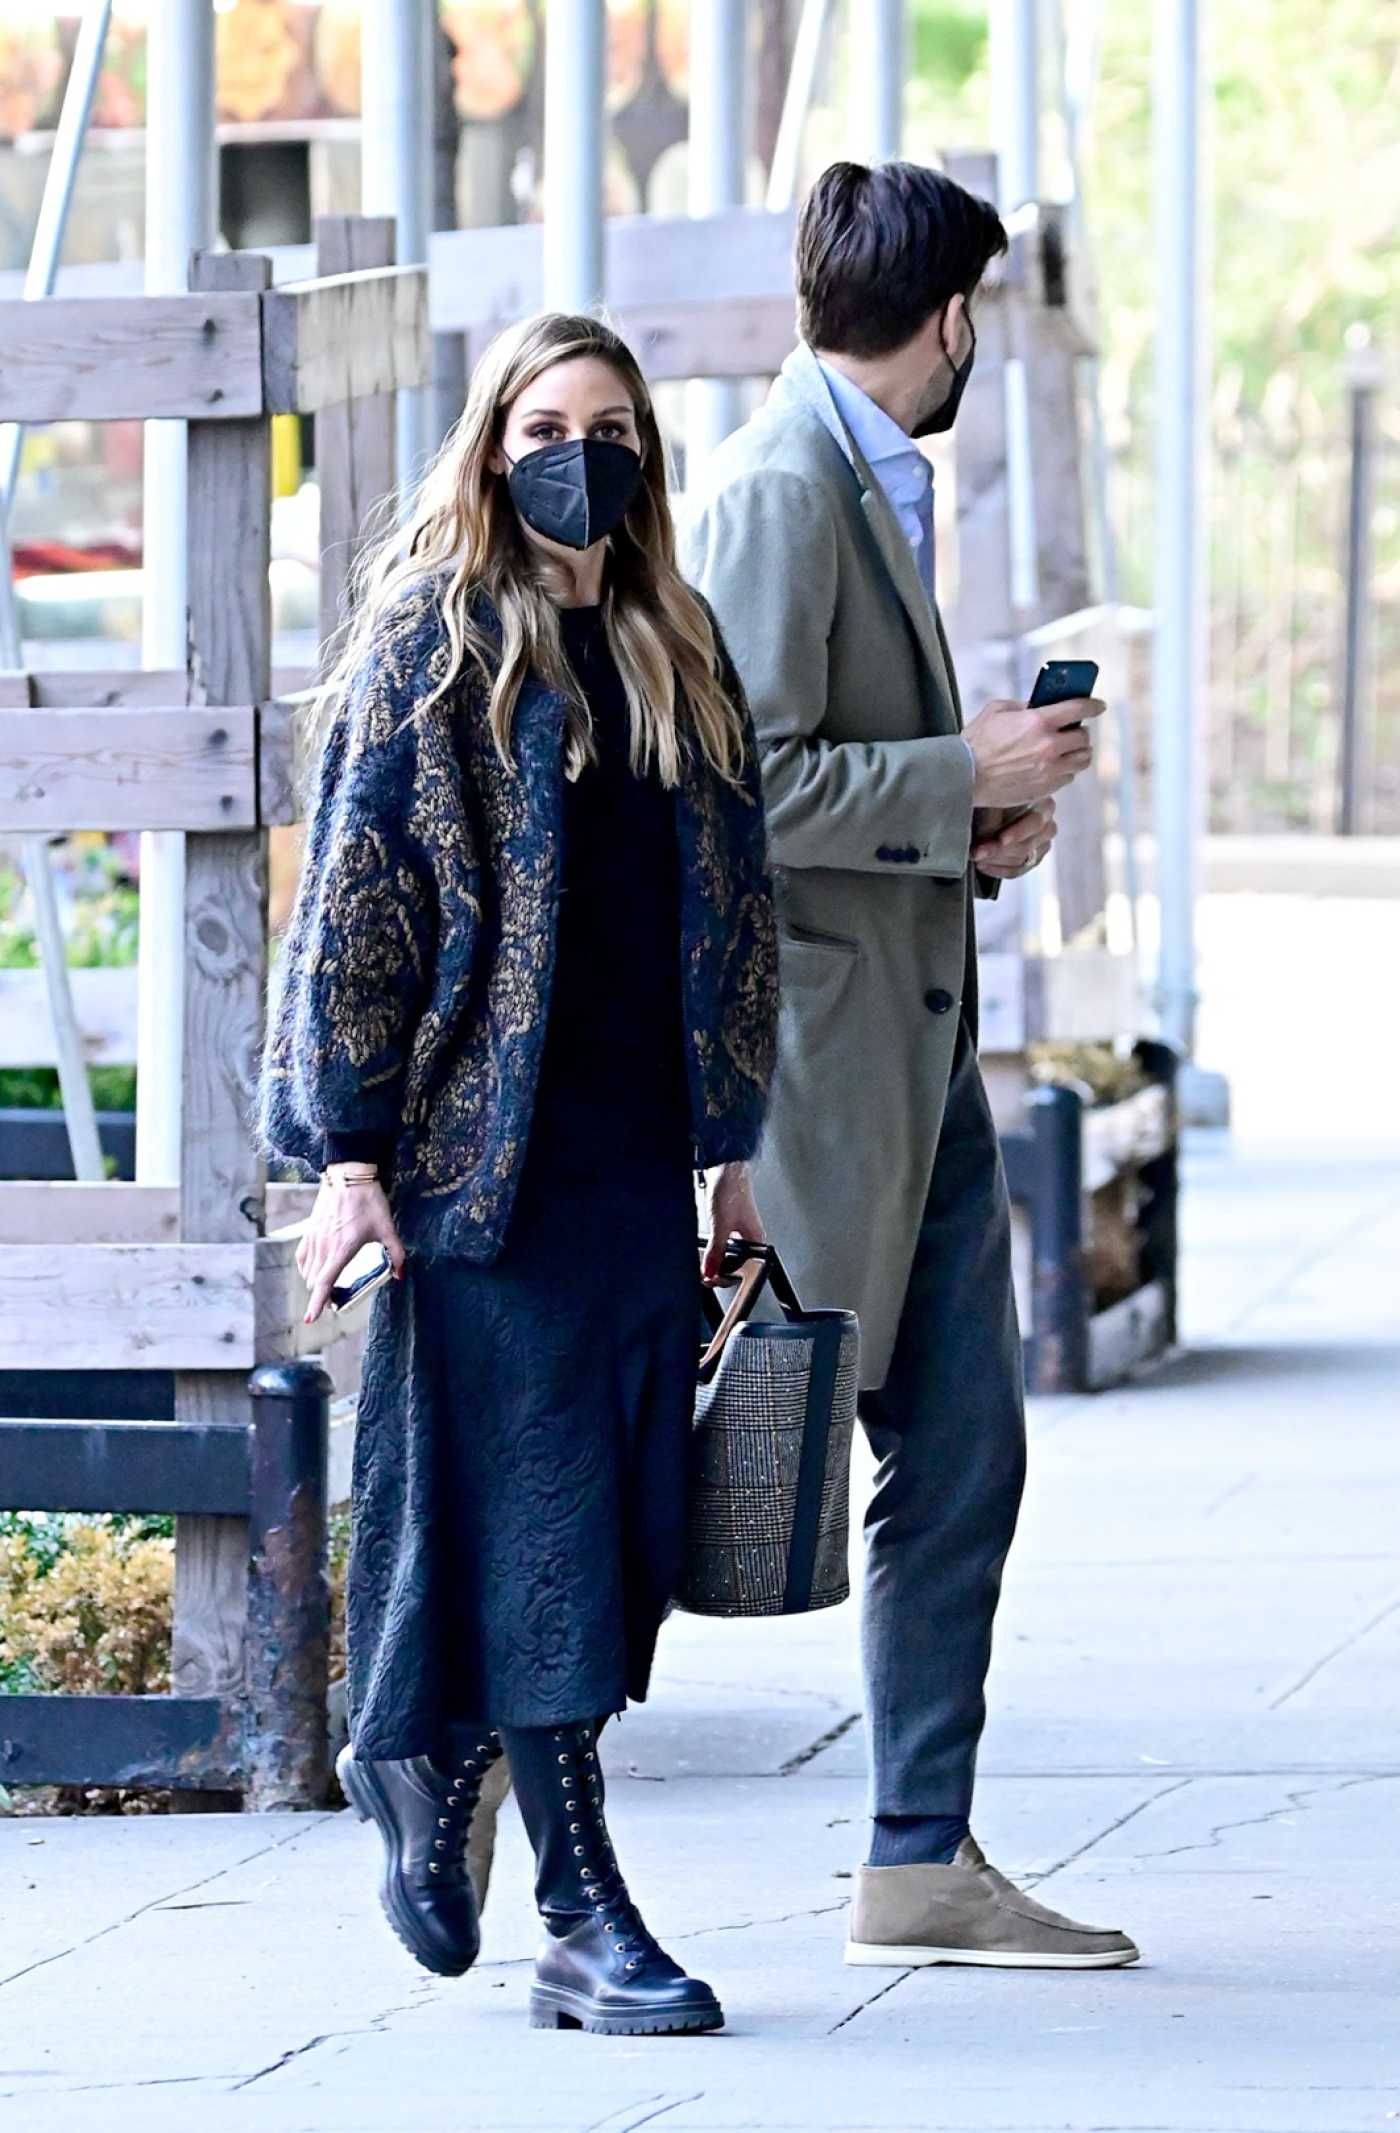 Olivia Palermo in a Black Boots Was Seen Out with Johannes Huebl in New York 04/08/2021